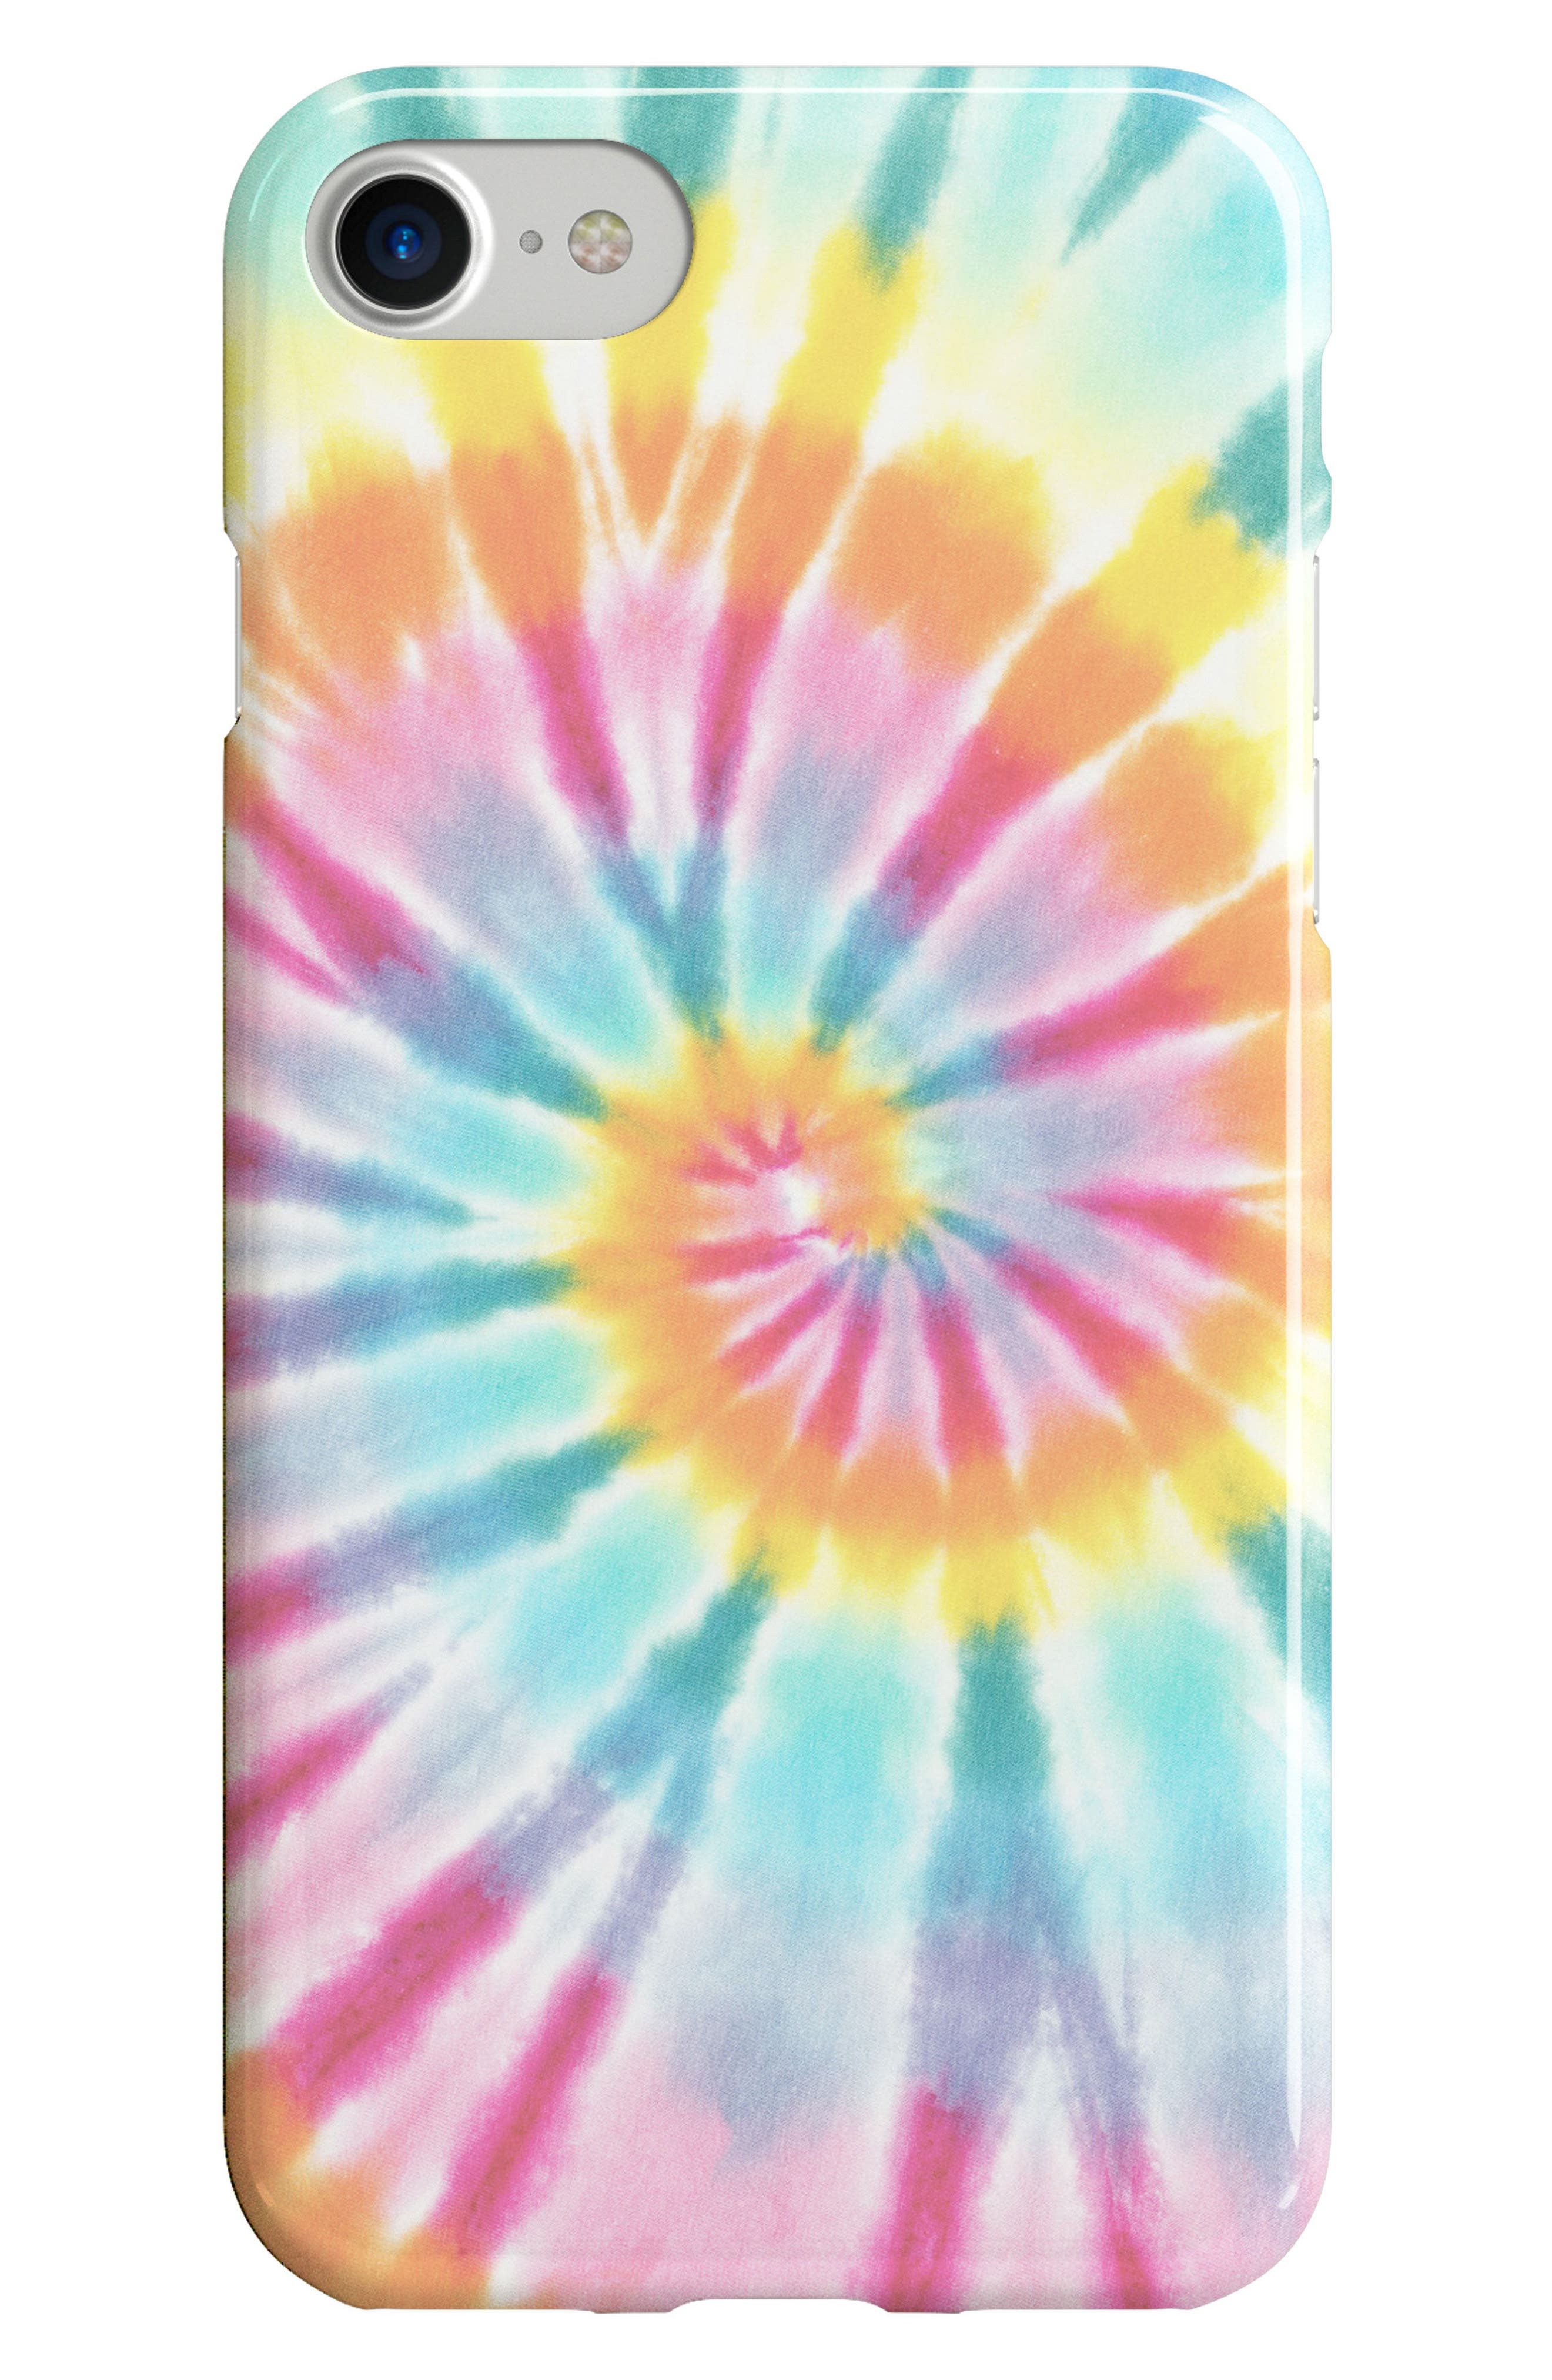 Alternate Image 1 Selected - Recover Tie Dye iPhone 6/7 Case